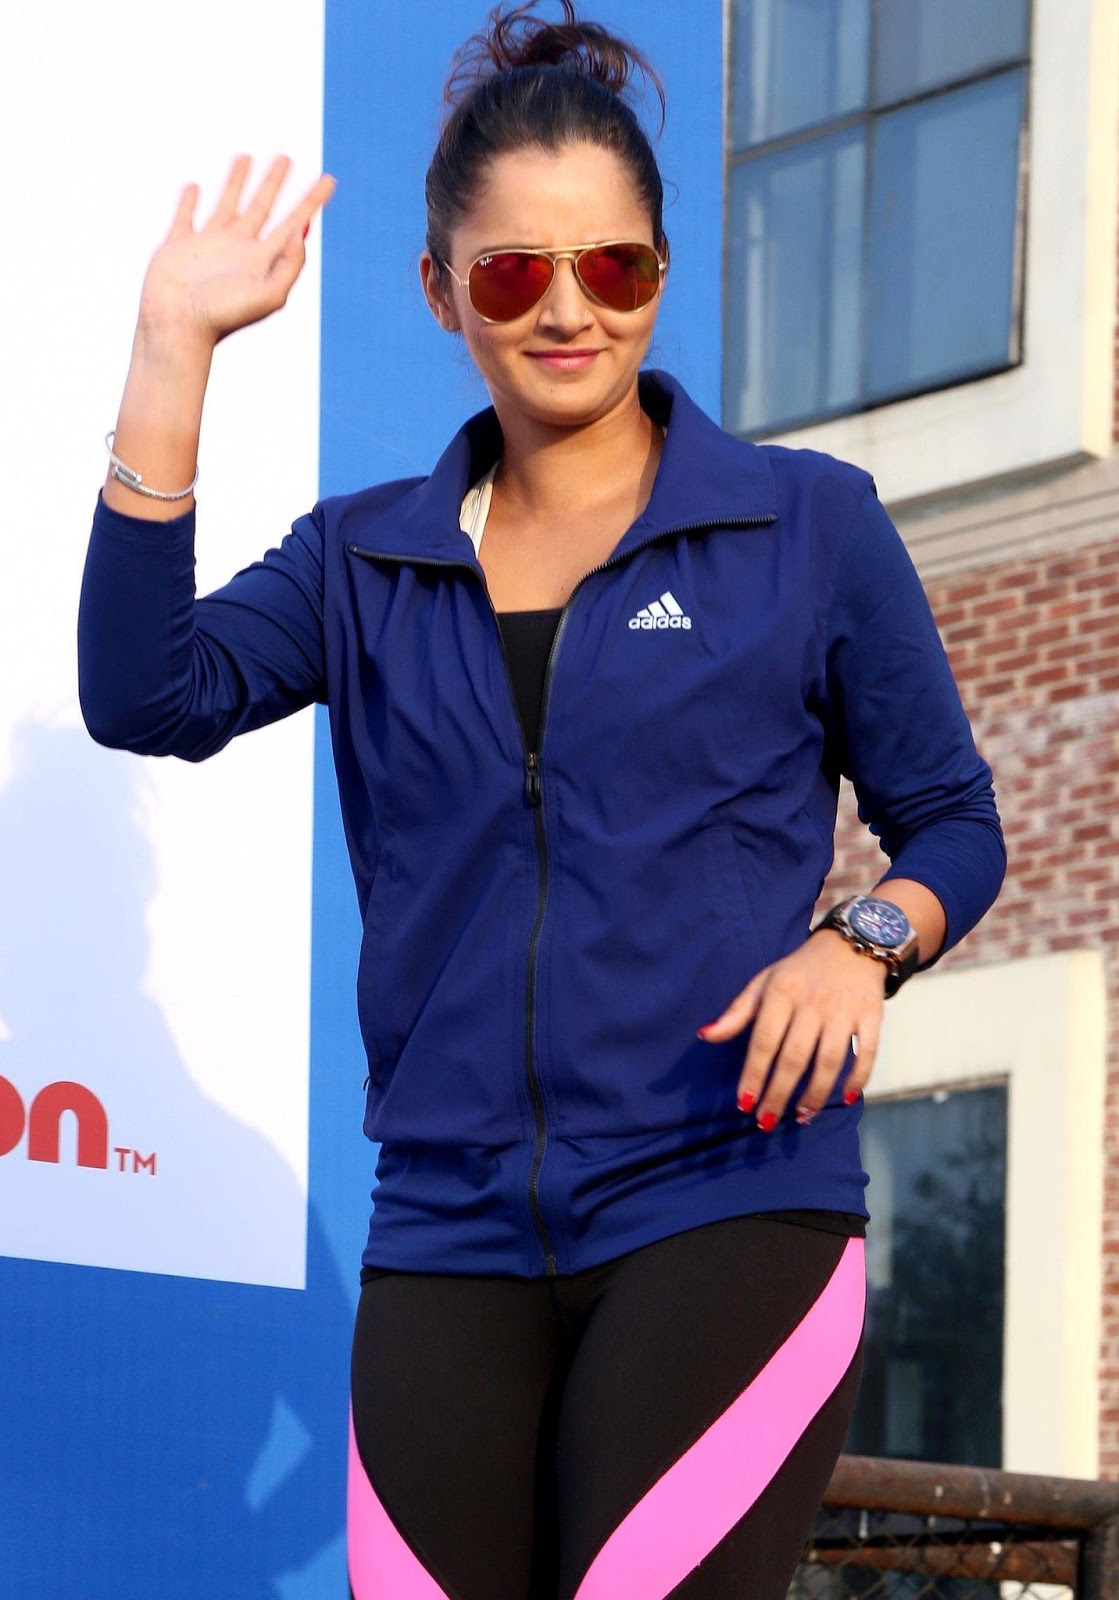 Sania Mirza Looks Super Sexy In Yoga Pants At Max Bupa -2693